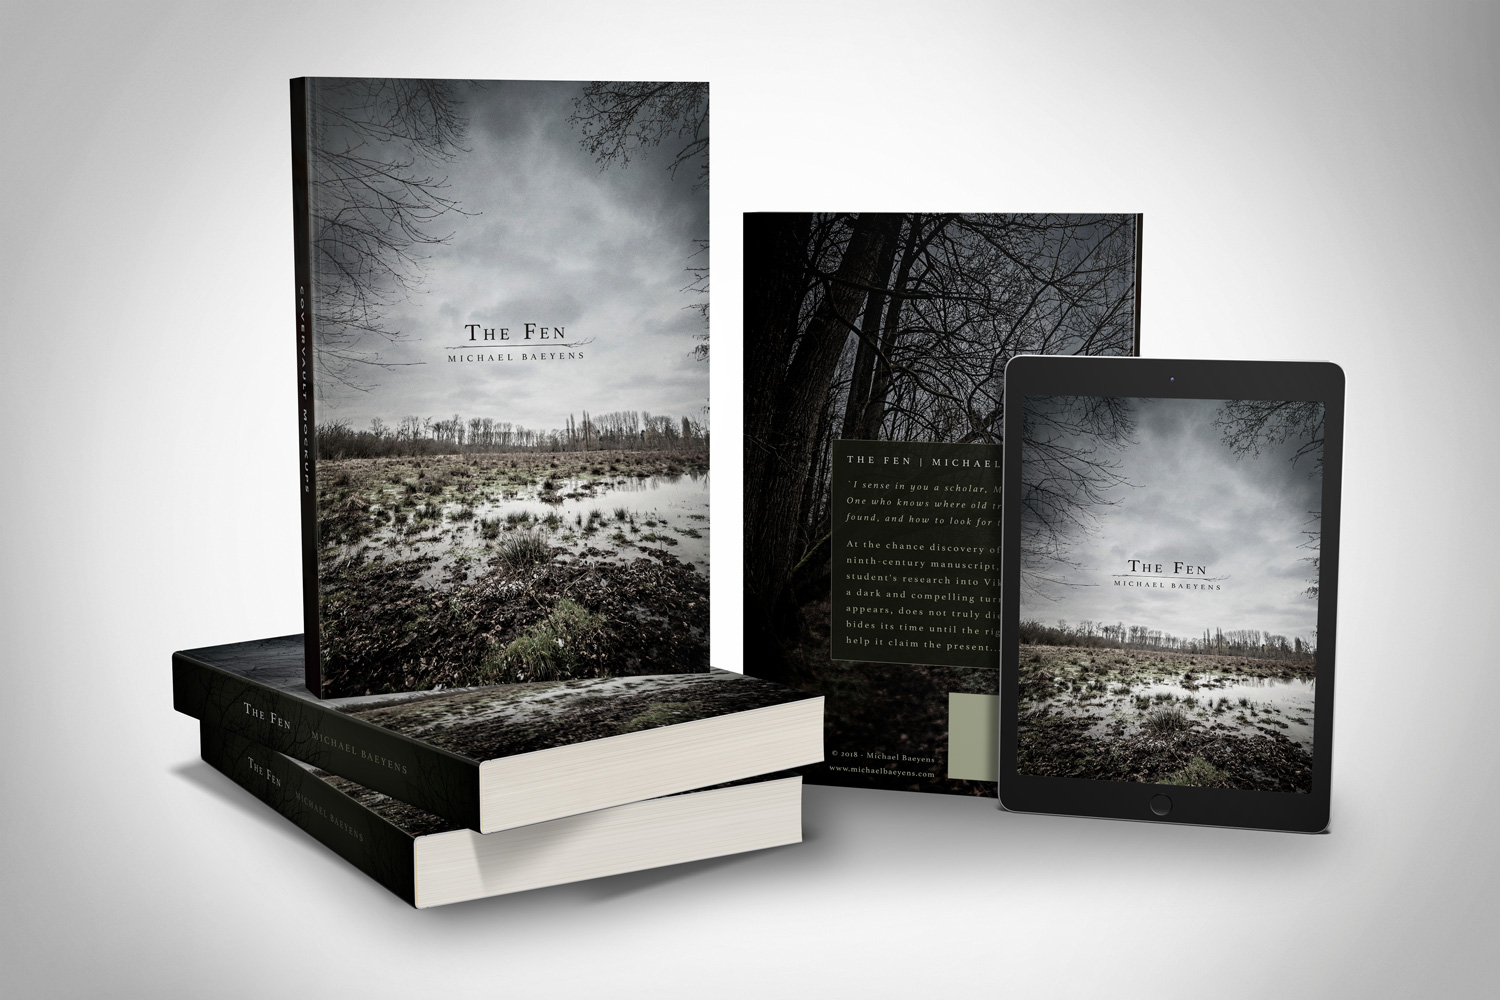 Greyclouds.be - Bert Blondeel | Design for print: photo and bookcover design - 'The Fen' by Michael Baeyens